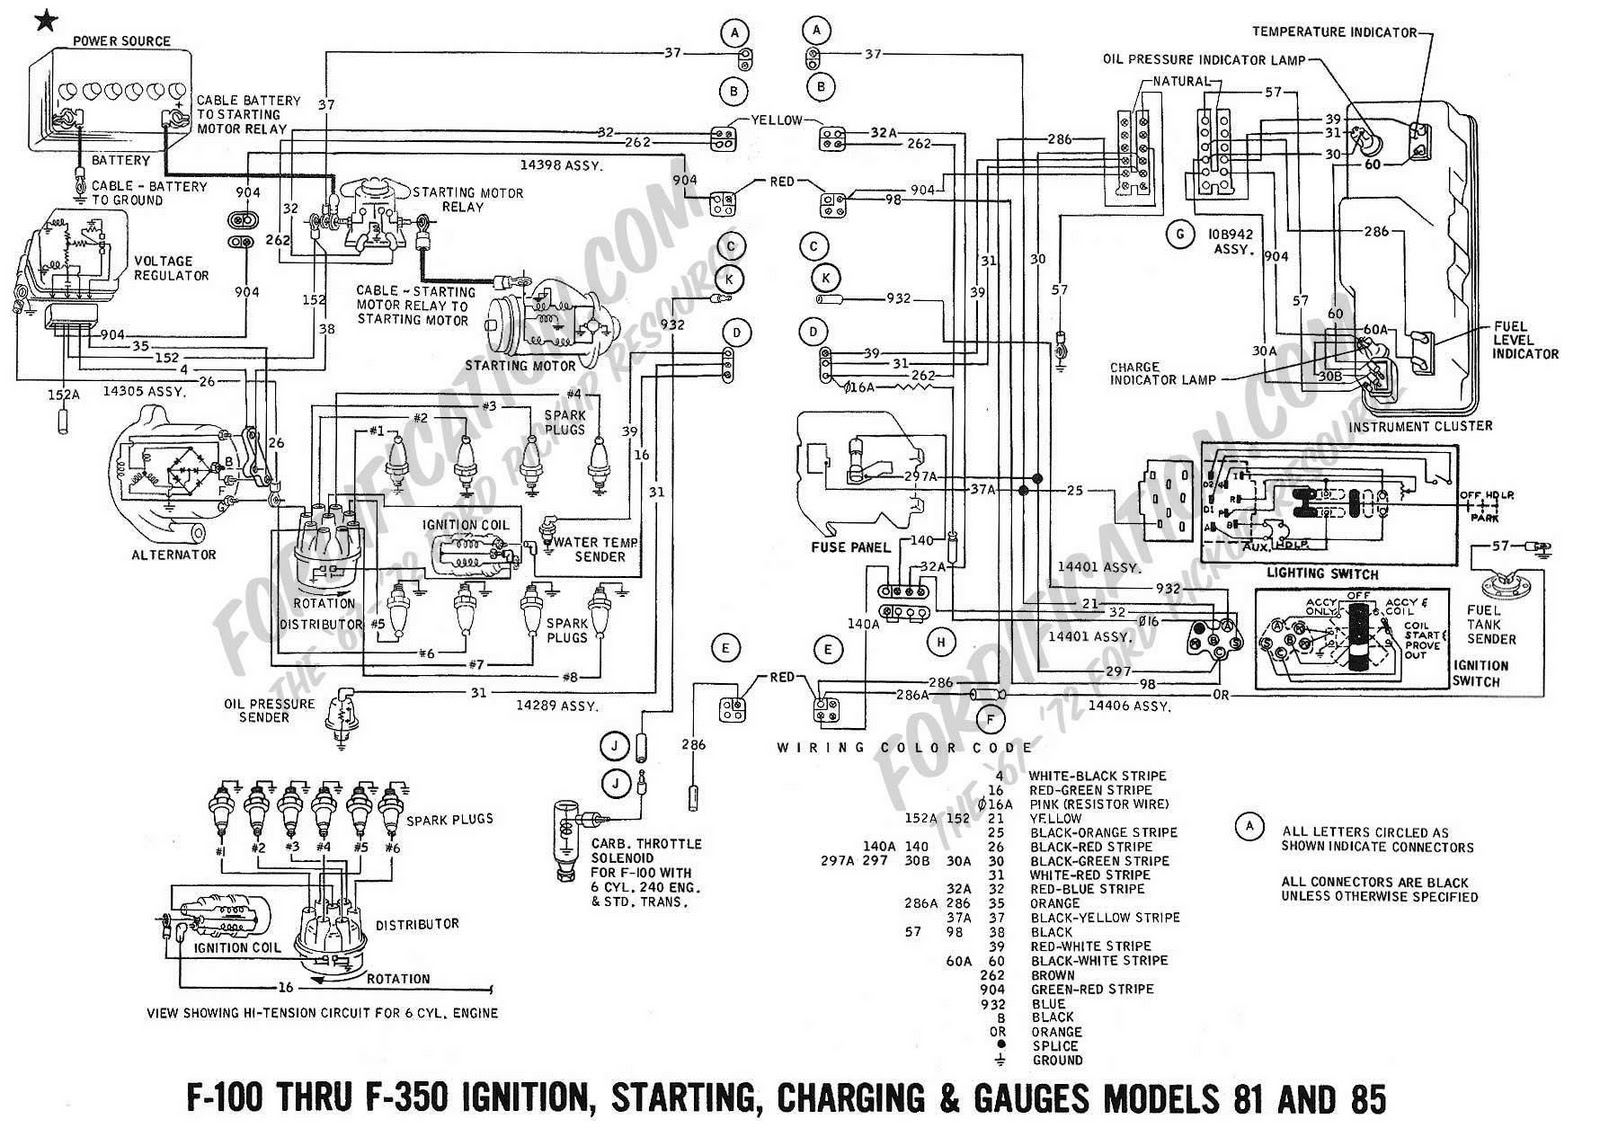 ford f f ignition starting charging and gauges 1969 ford f100 f350 ignition starting charging and gauges wiring diagram